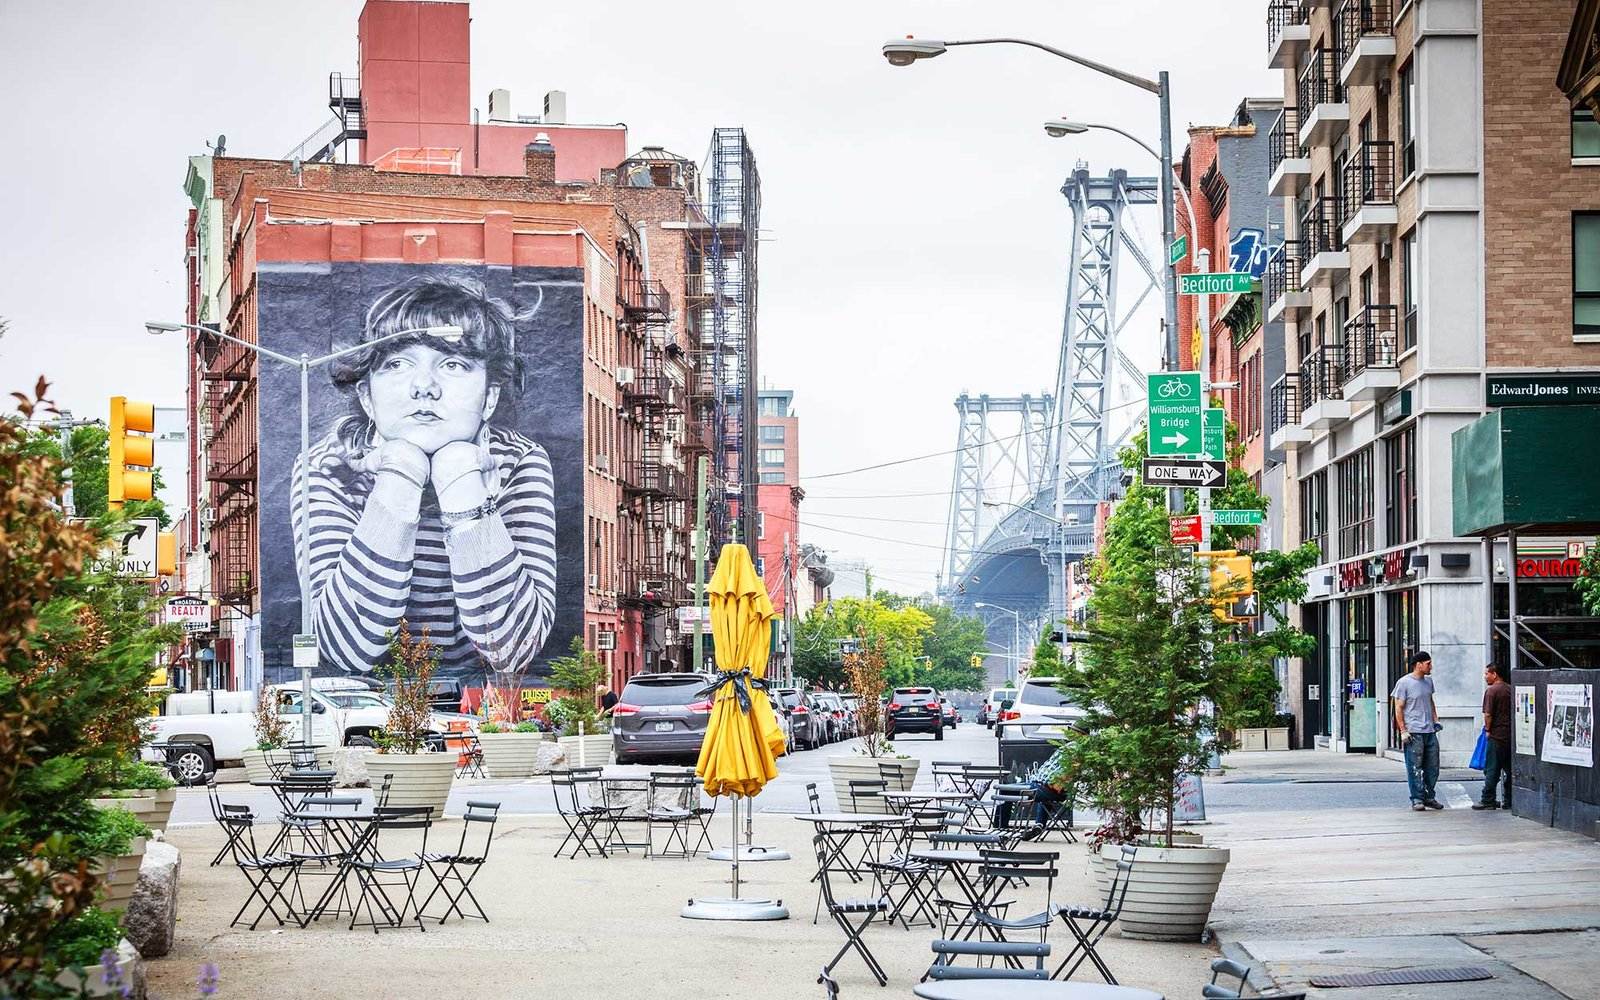 Streetscape in Williamsburg along Broadway with empty chairs on hazy day. Williamsburg bridge is visible in the background.